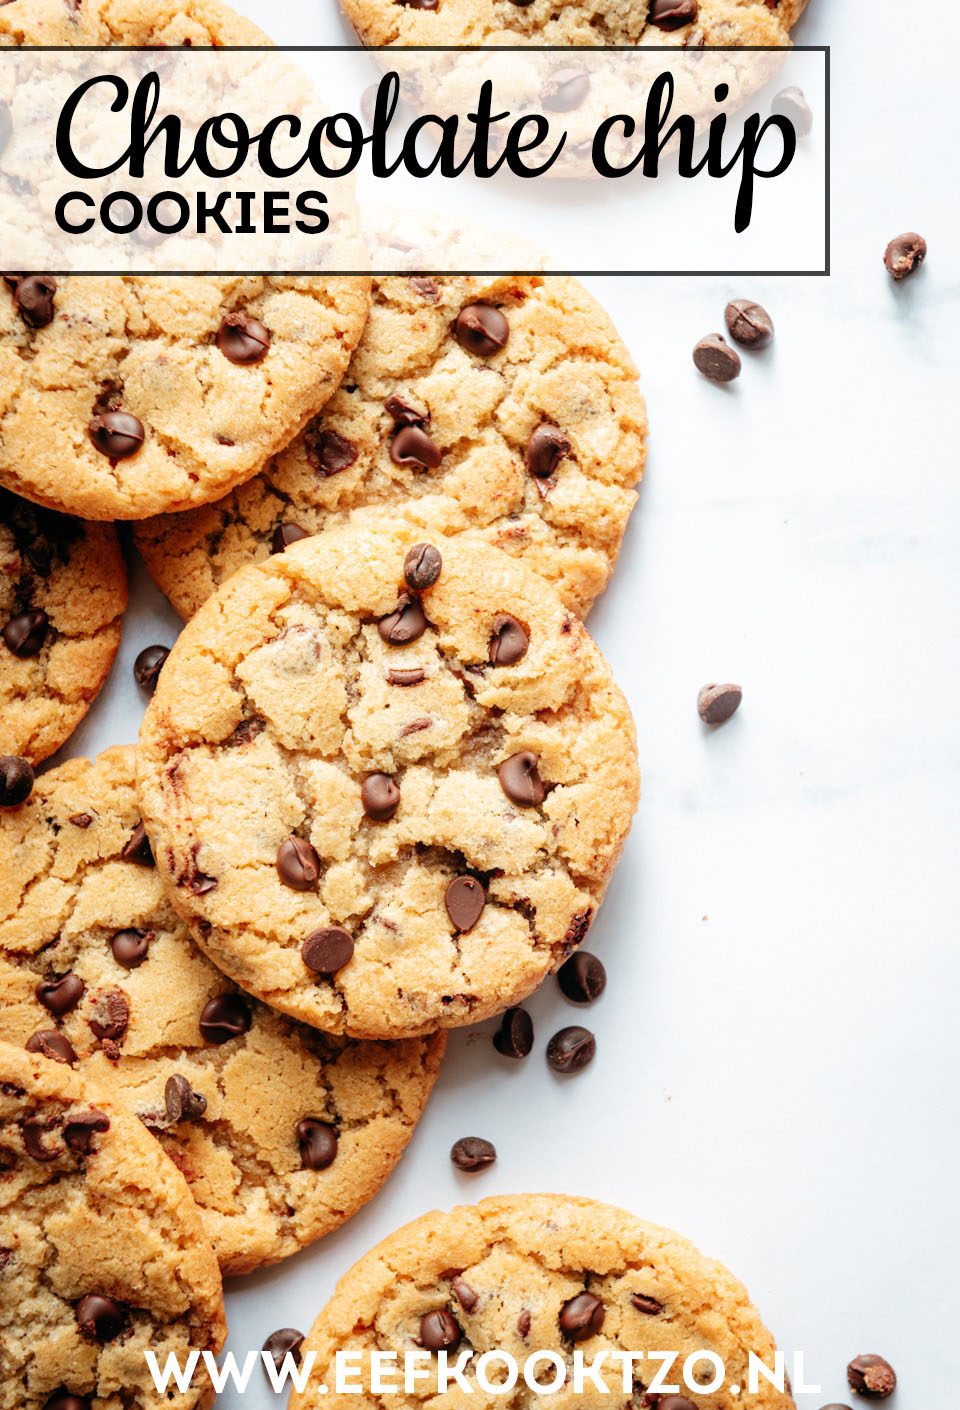 American chocolate chip cookies Pinterest Collage